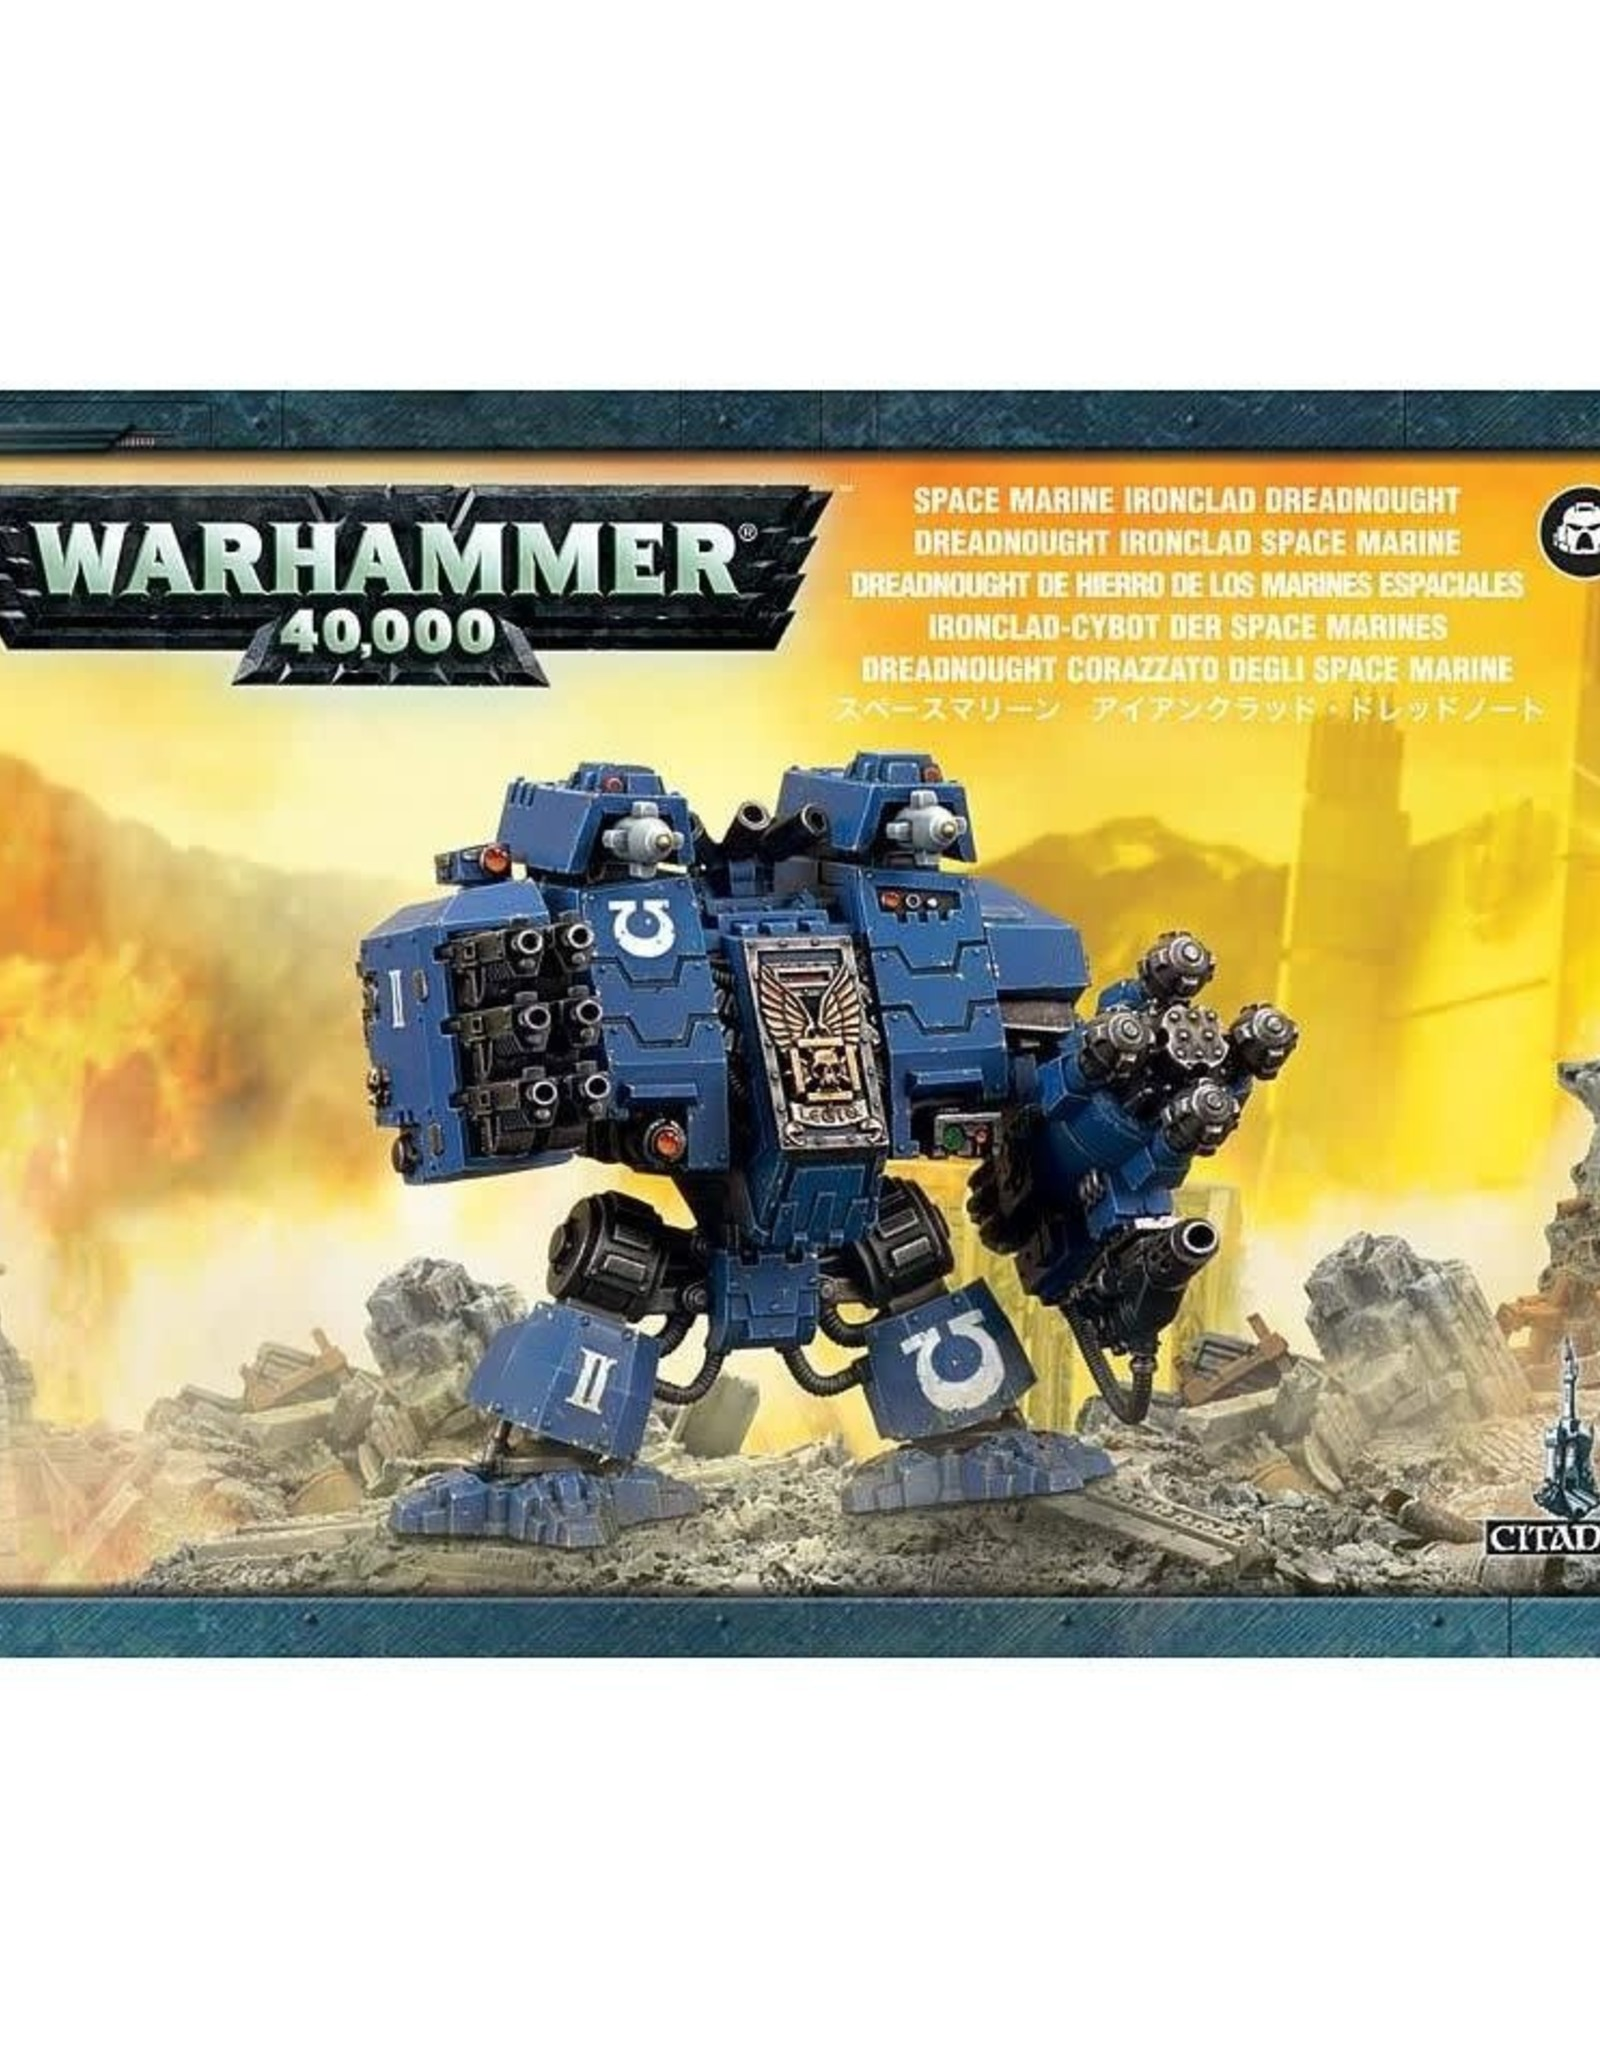 Warhammer 40K Space Marine Ironclad Dreadnought